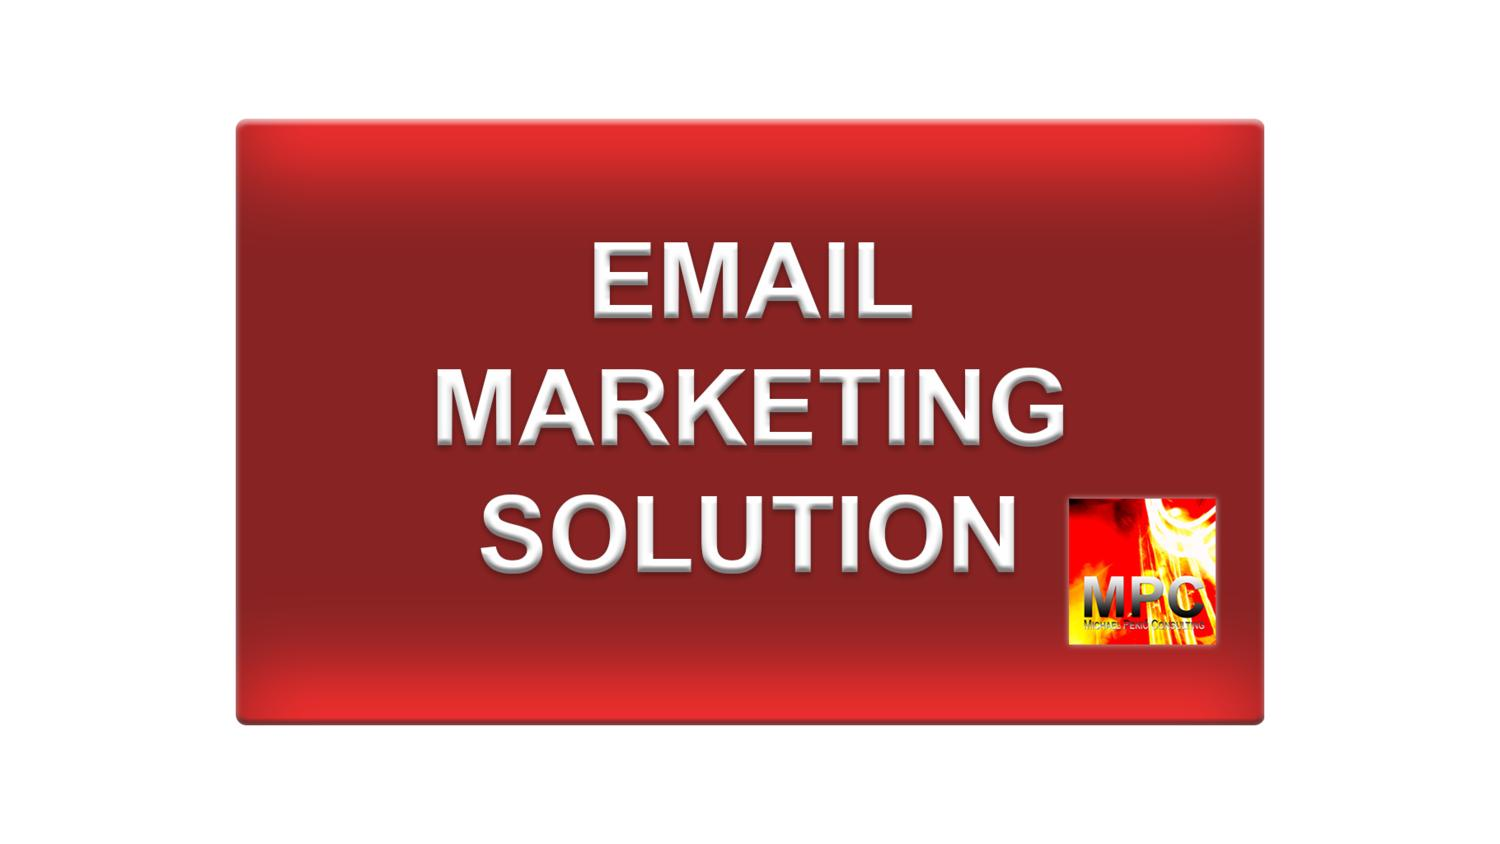 Email Campaign Management Setup by mpek - 98471